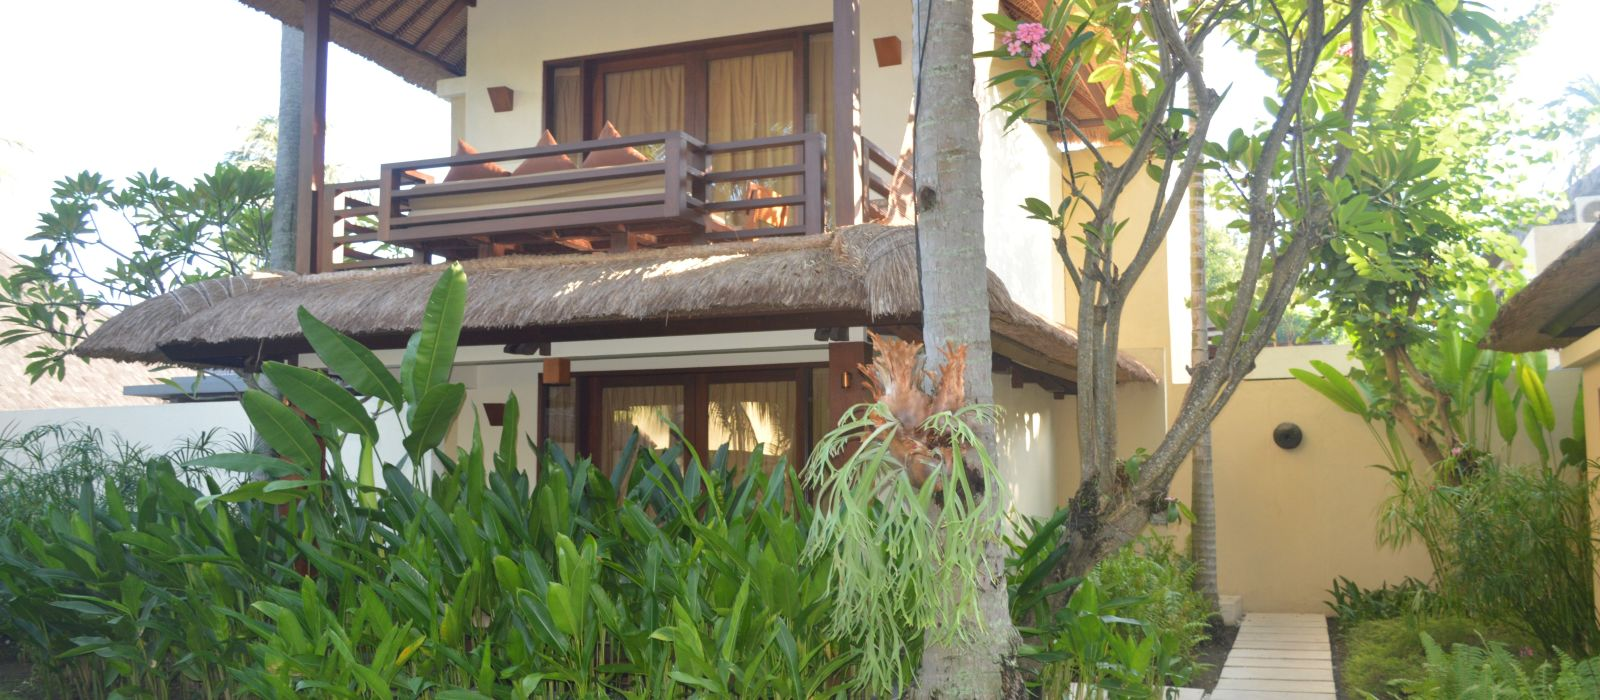 Hotel Qunci Villas Indonesia